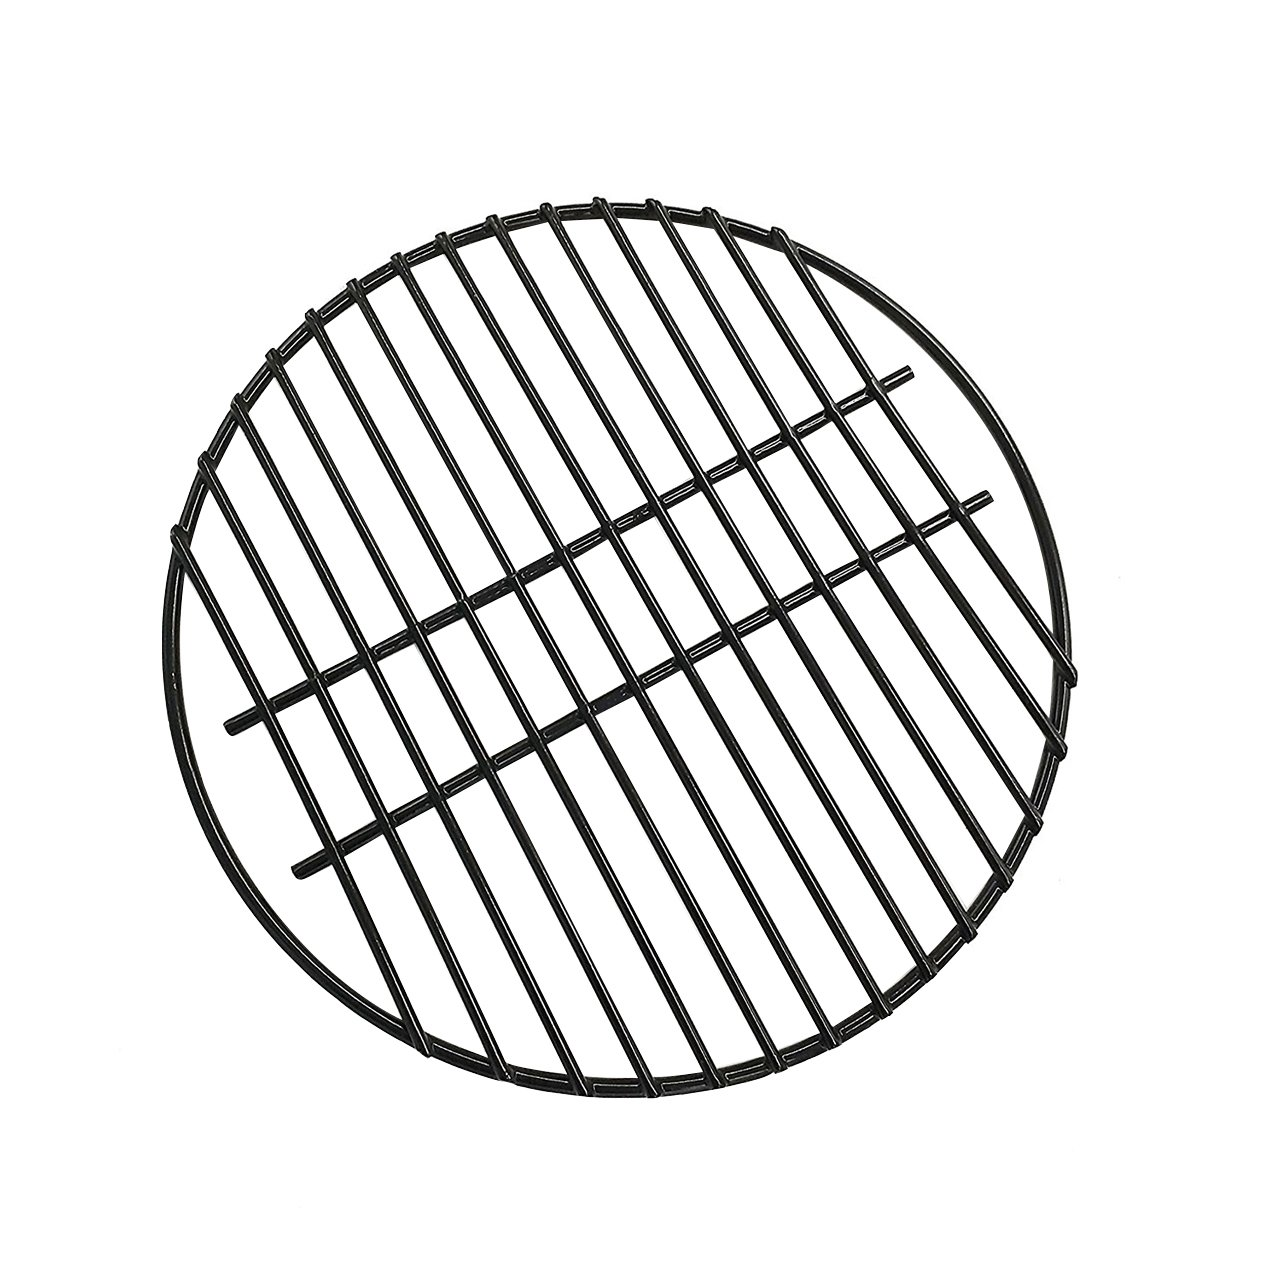 "BBQ 15'' Porcelain Coated Steel Wire Cooking Grid Grate Replacement for Grill Dome Medium Big Green Egg Kamado Joe Classic Char-Griller Barbecue Ceramic Grill and Smoker (15"")"